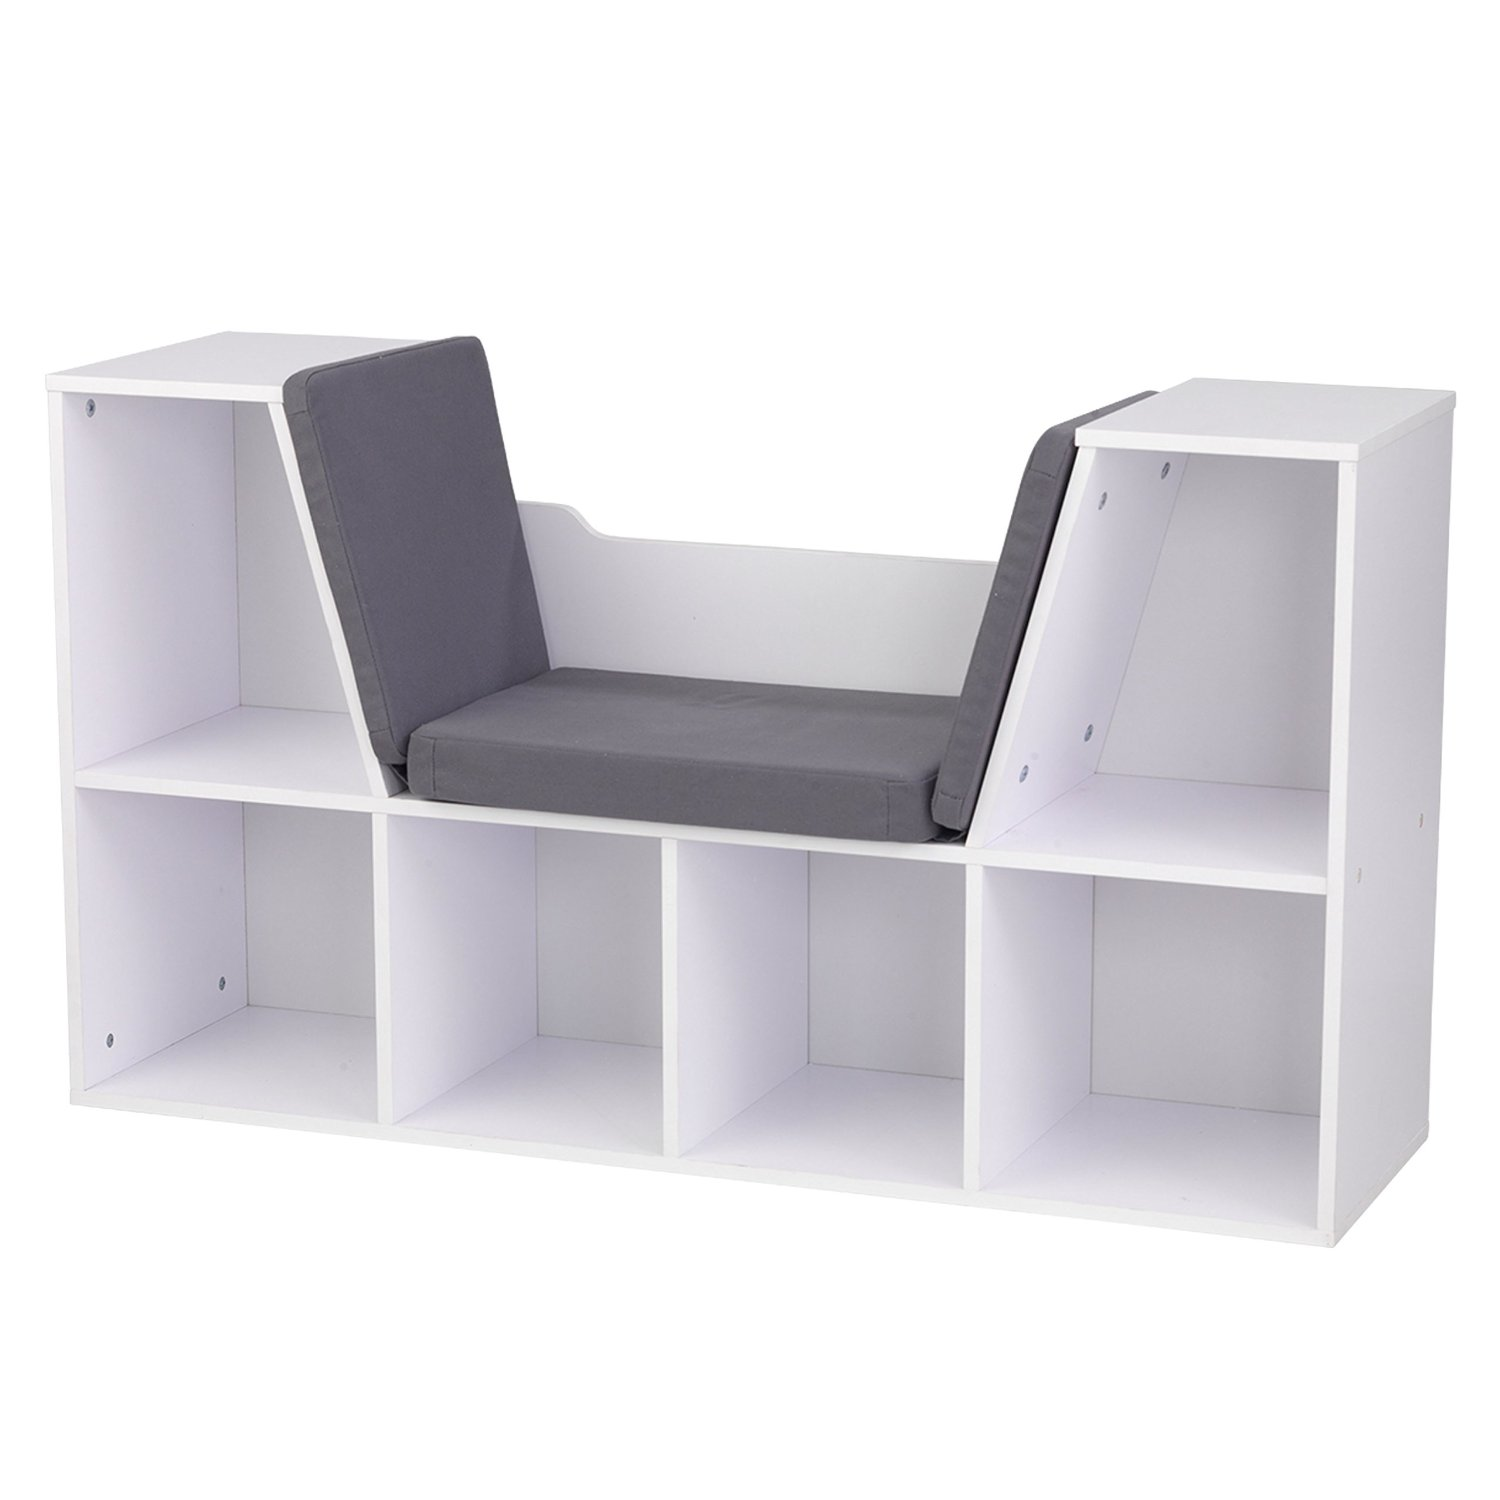 Deal Alert Kidkraft Bookcase With Reading Nook Toy Hip